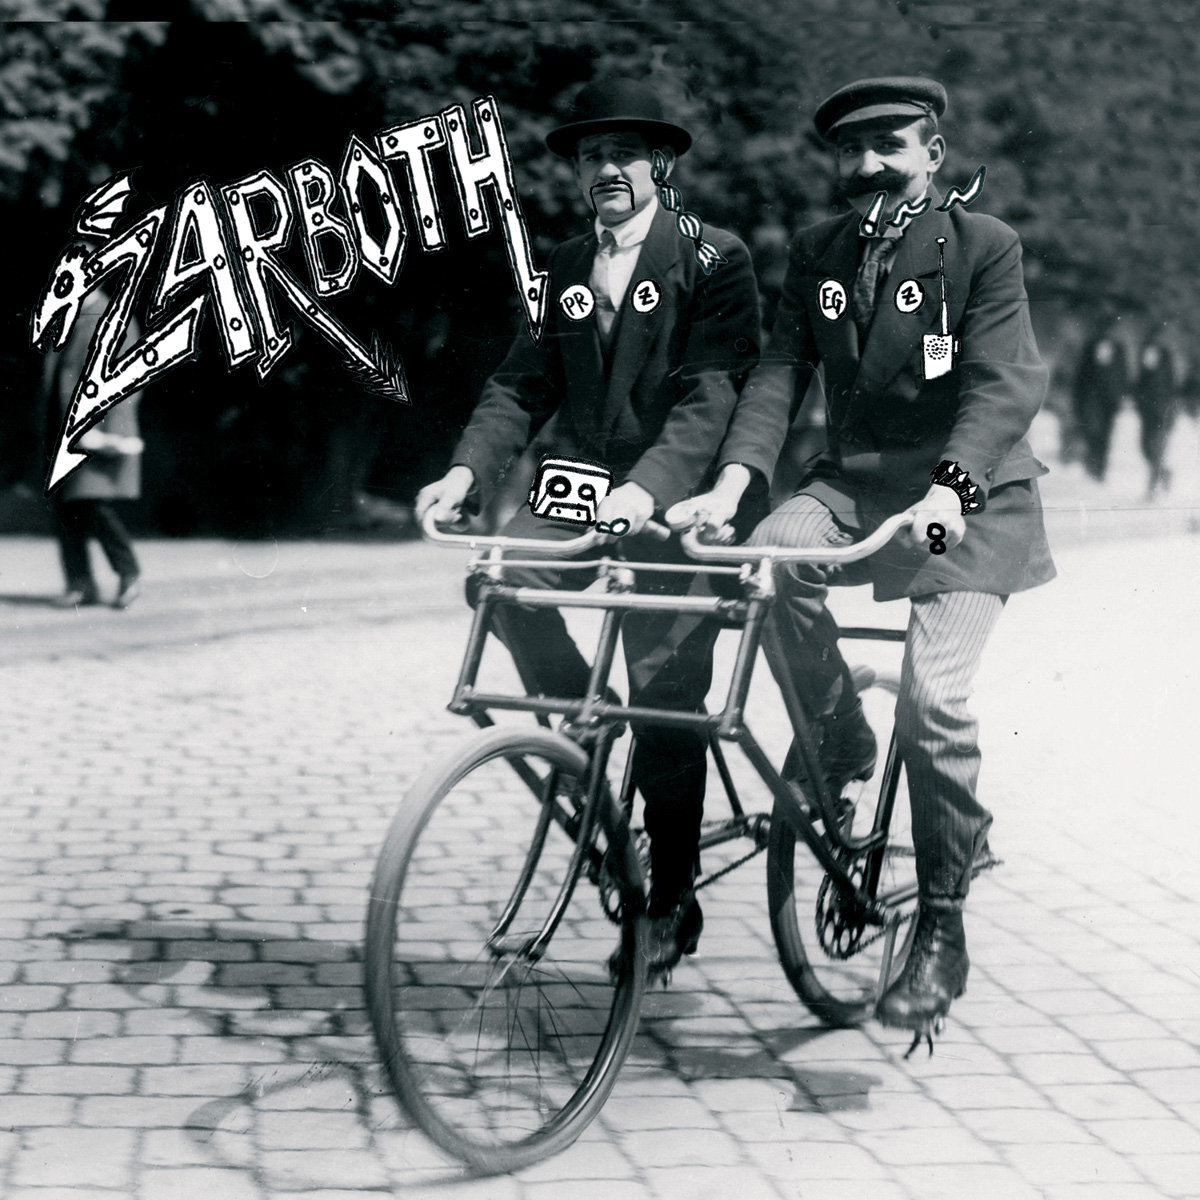 Zarboth self-titled